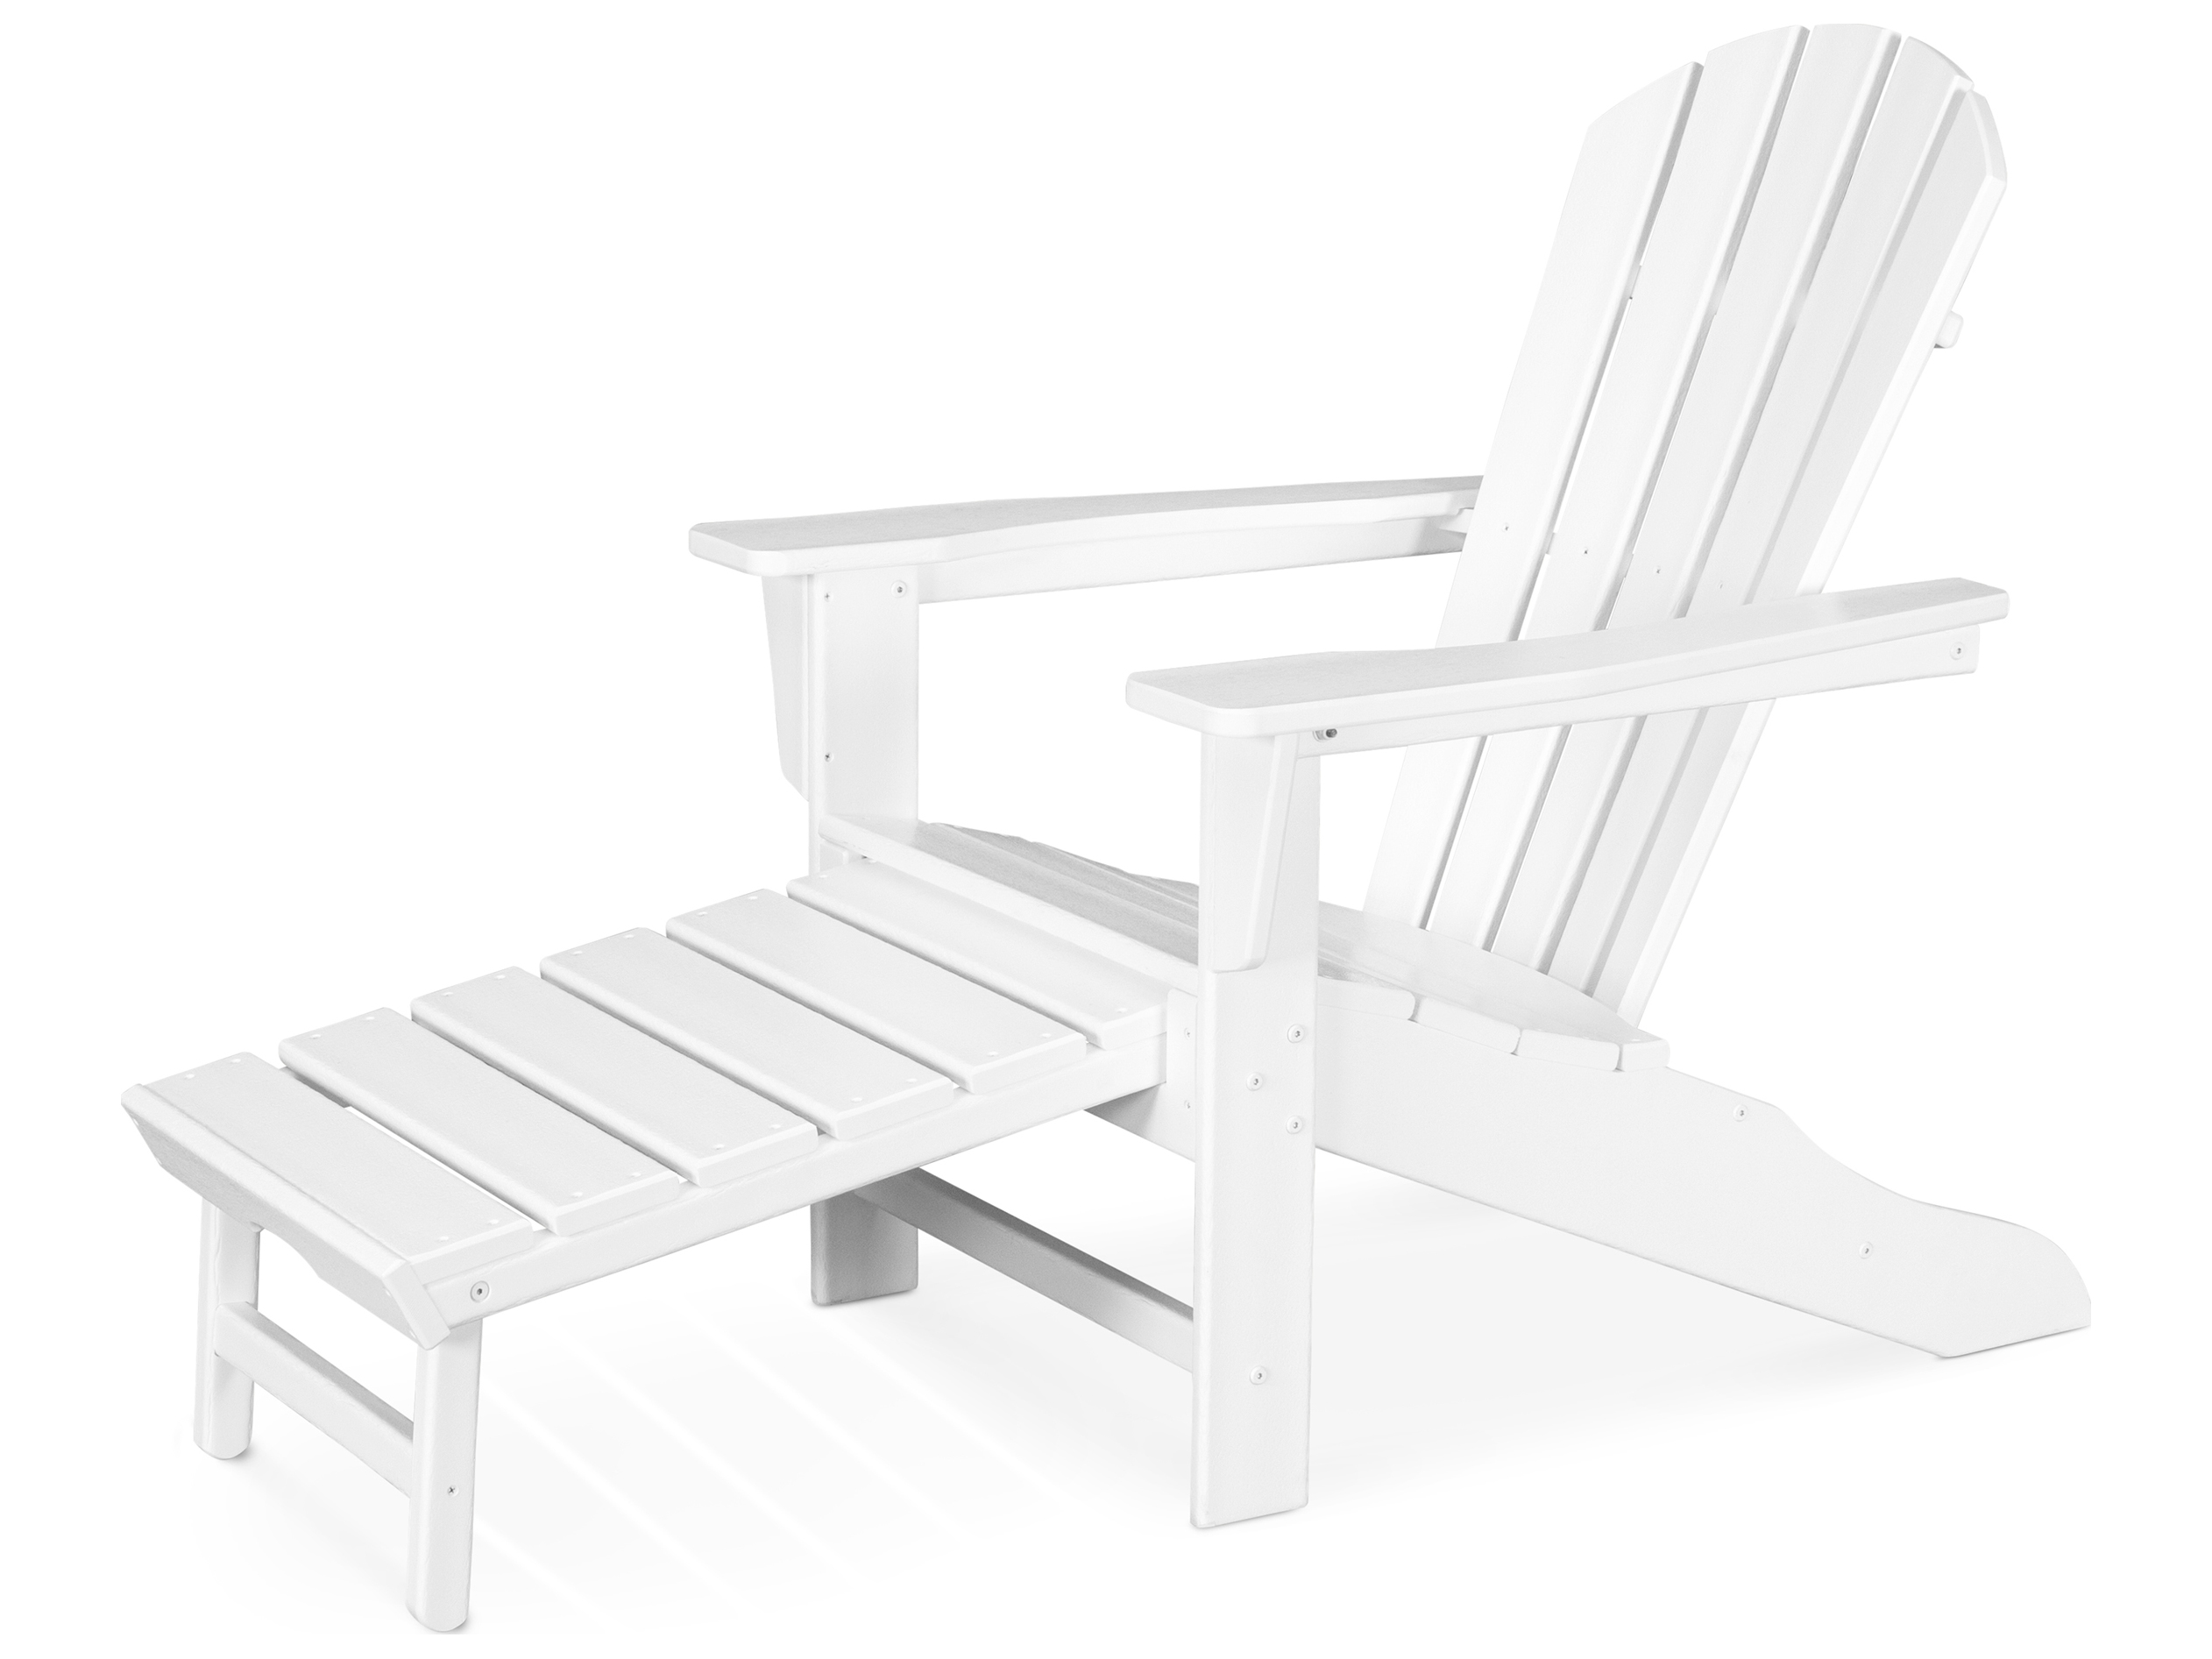 Polywood south beach recycled plastic adirondack arm chair with hideaway ottoman hna15 - Plastic adirondack footrest ...